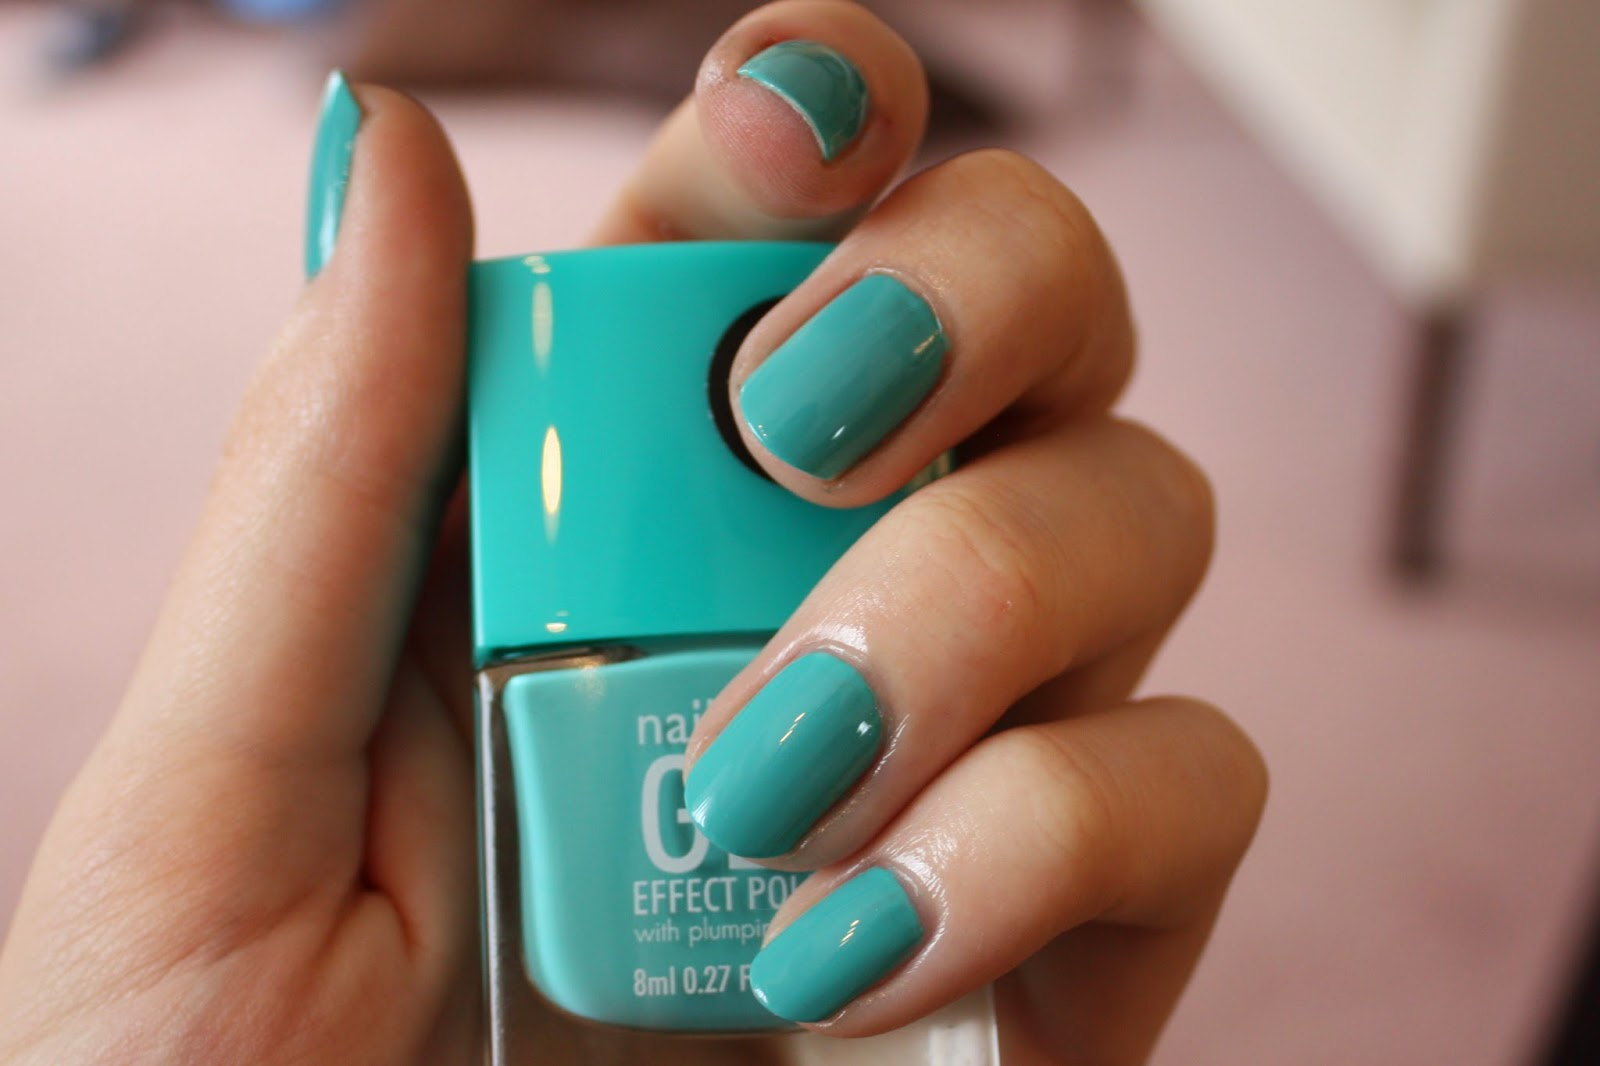 Nails Inc. Gel Effect Polish in Soho Place Swatch